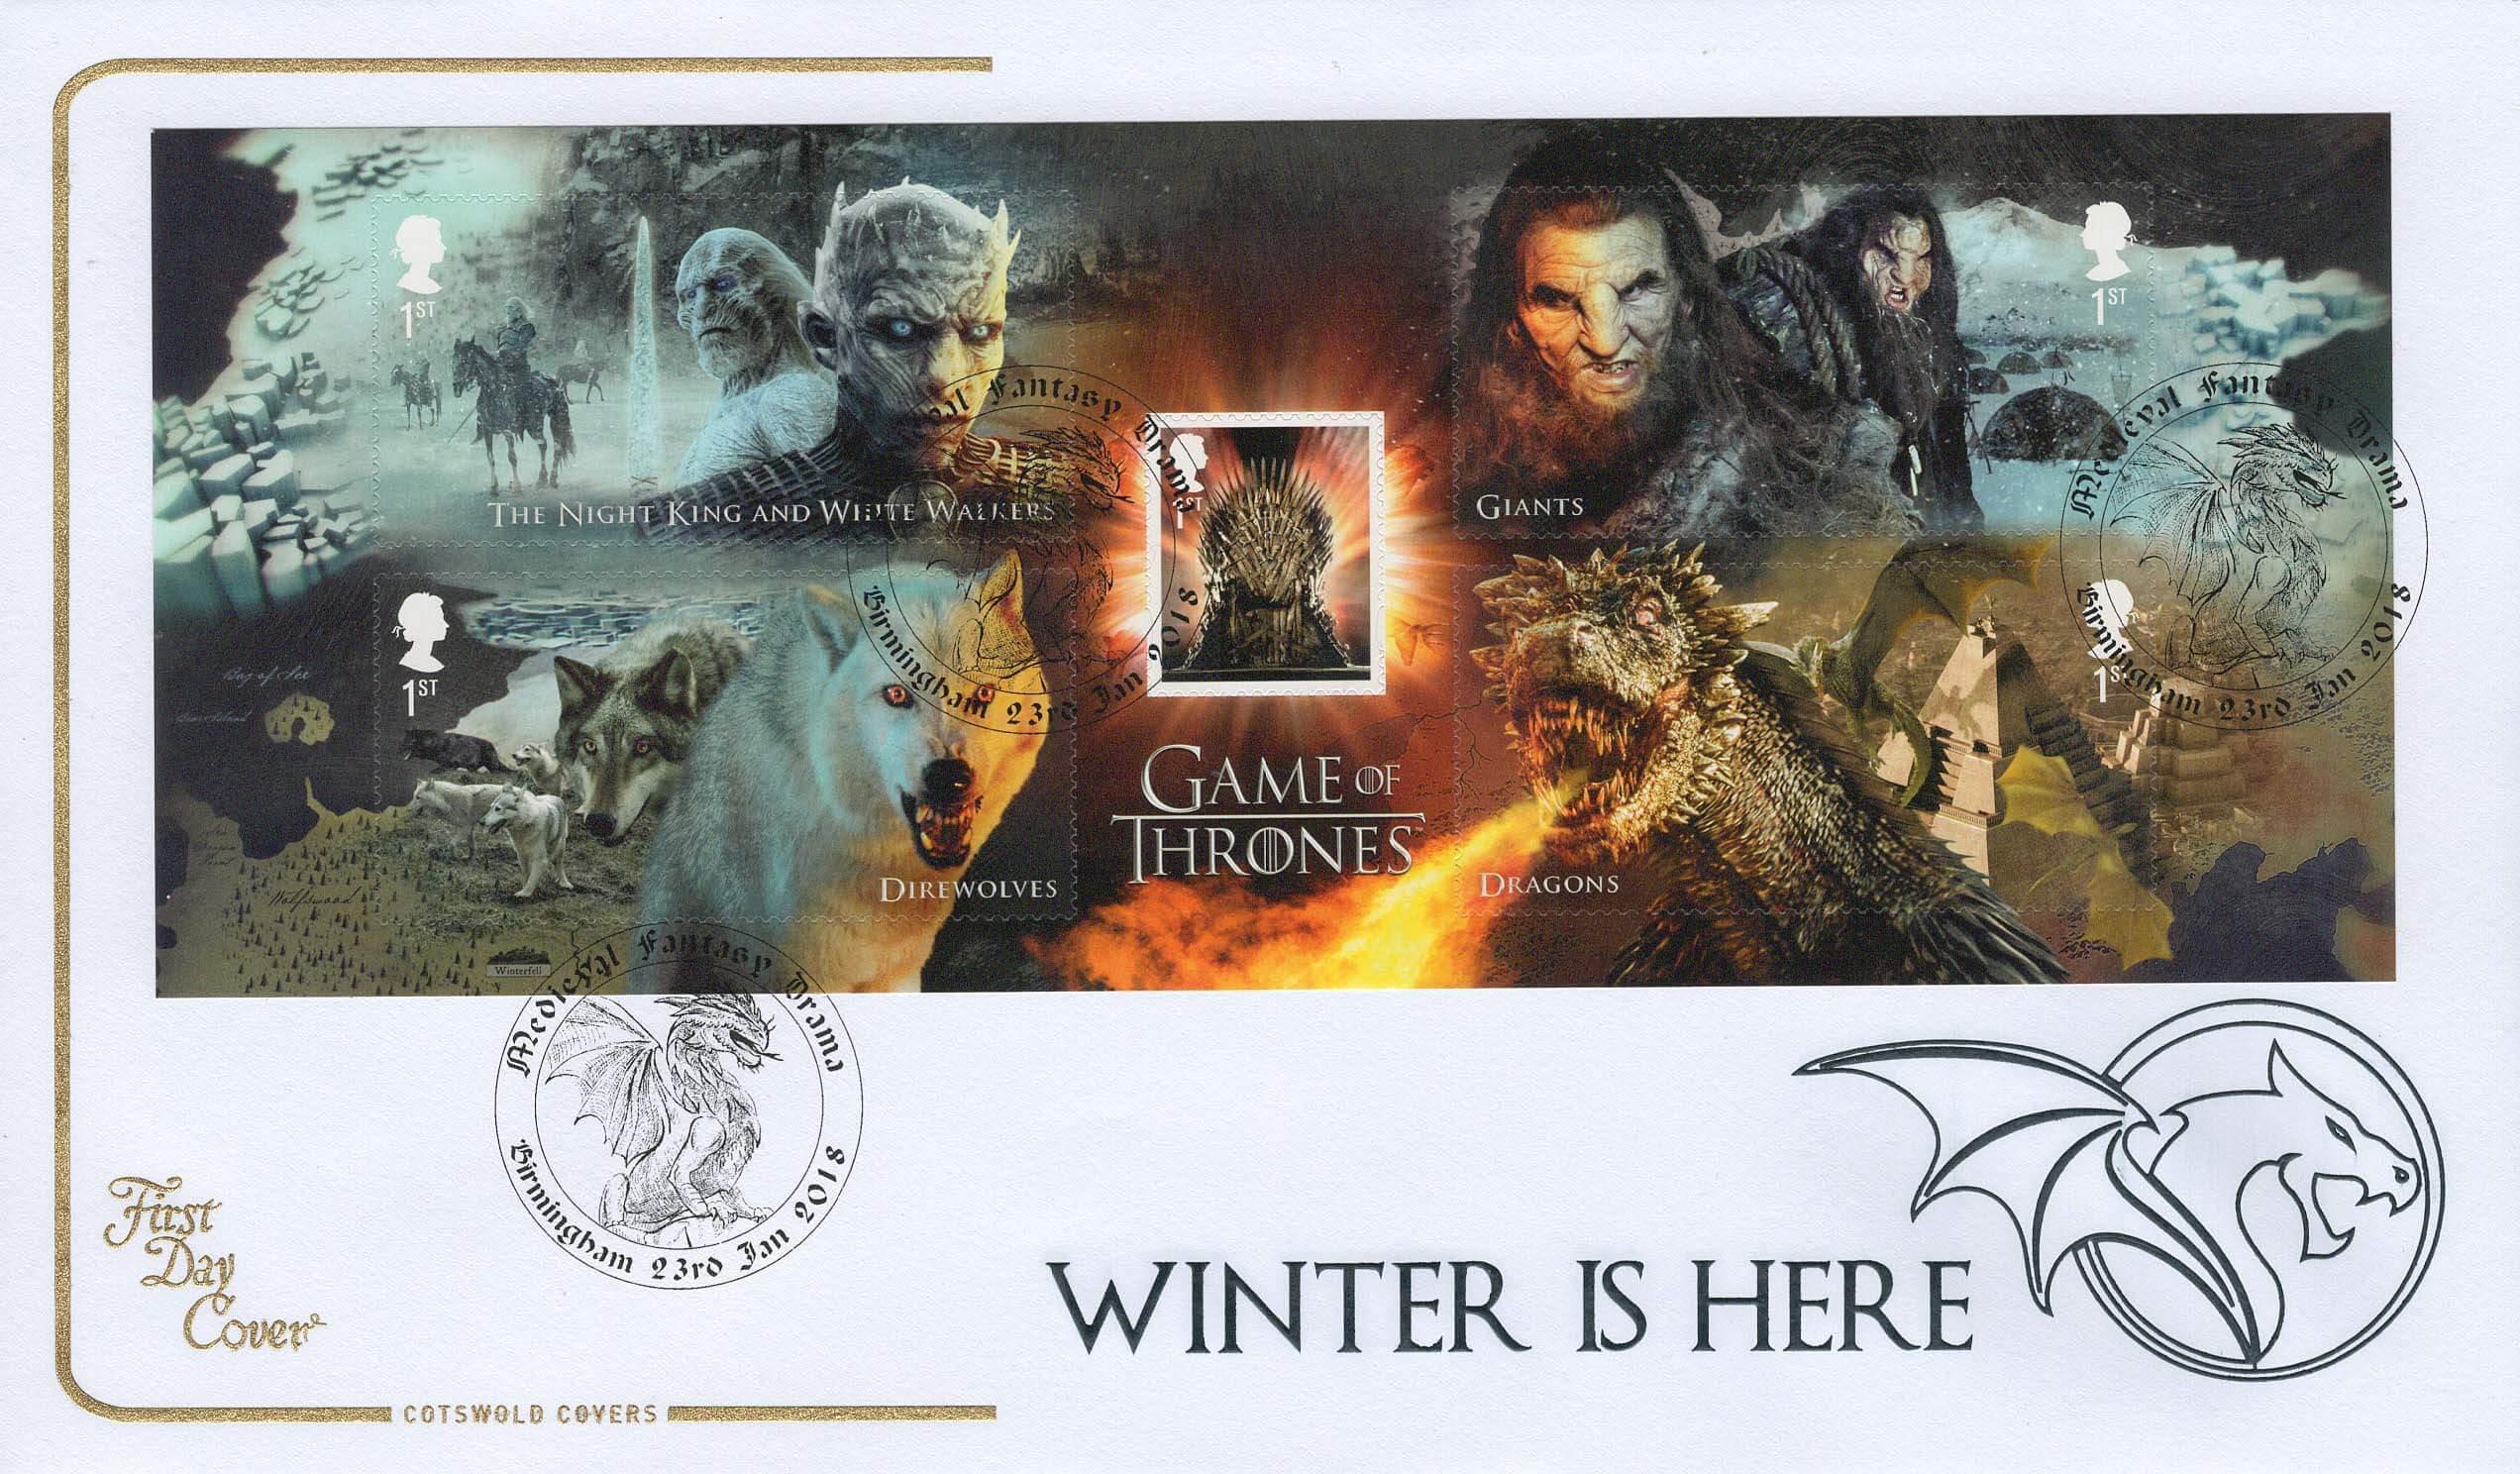 Cotswold Game of Thrones Minisheet FDC